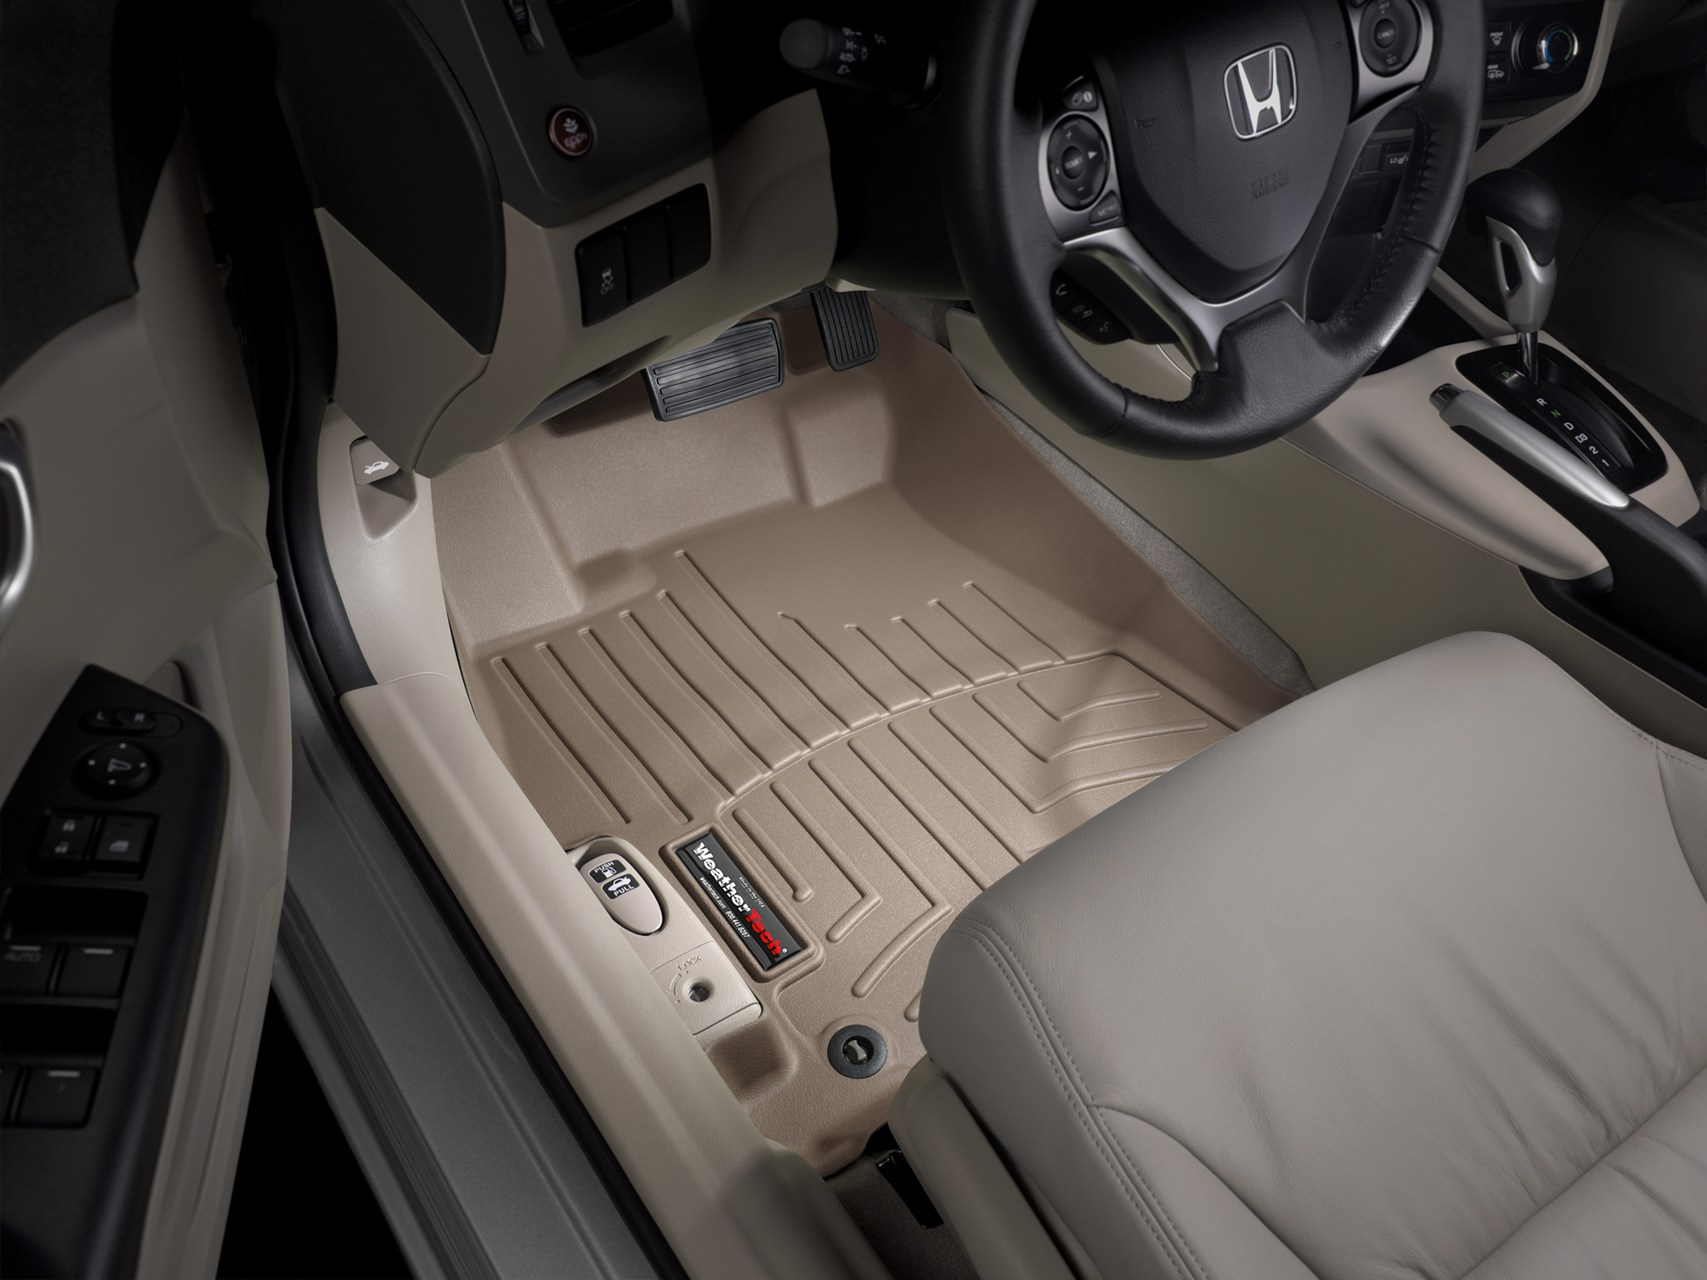 weathertech protection products